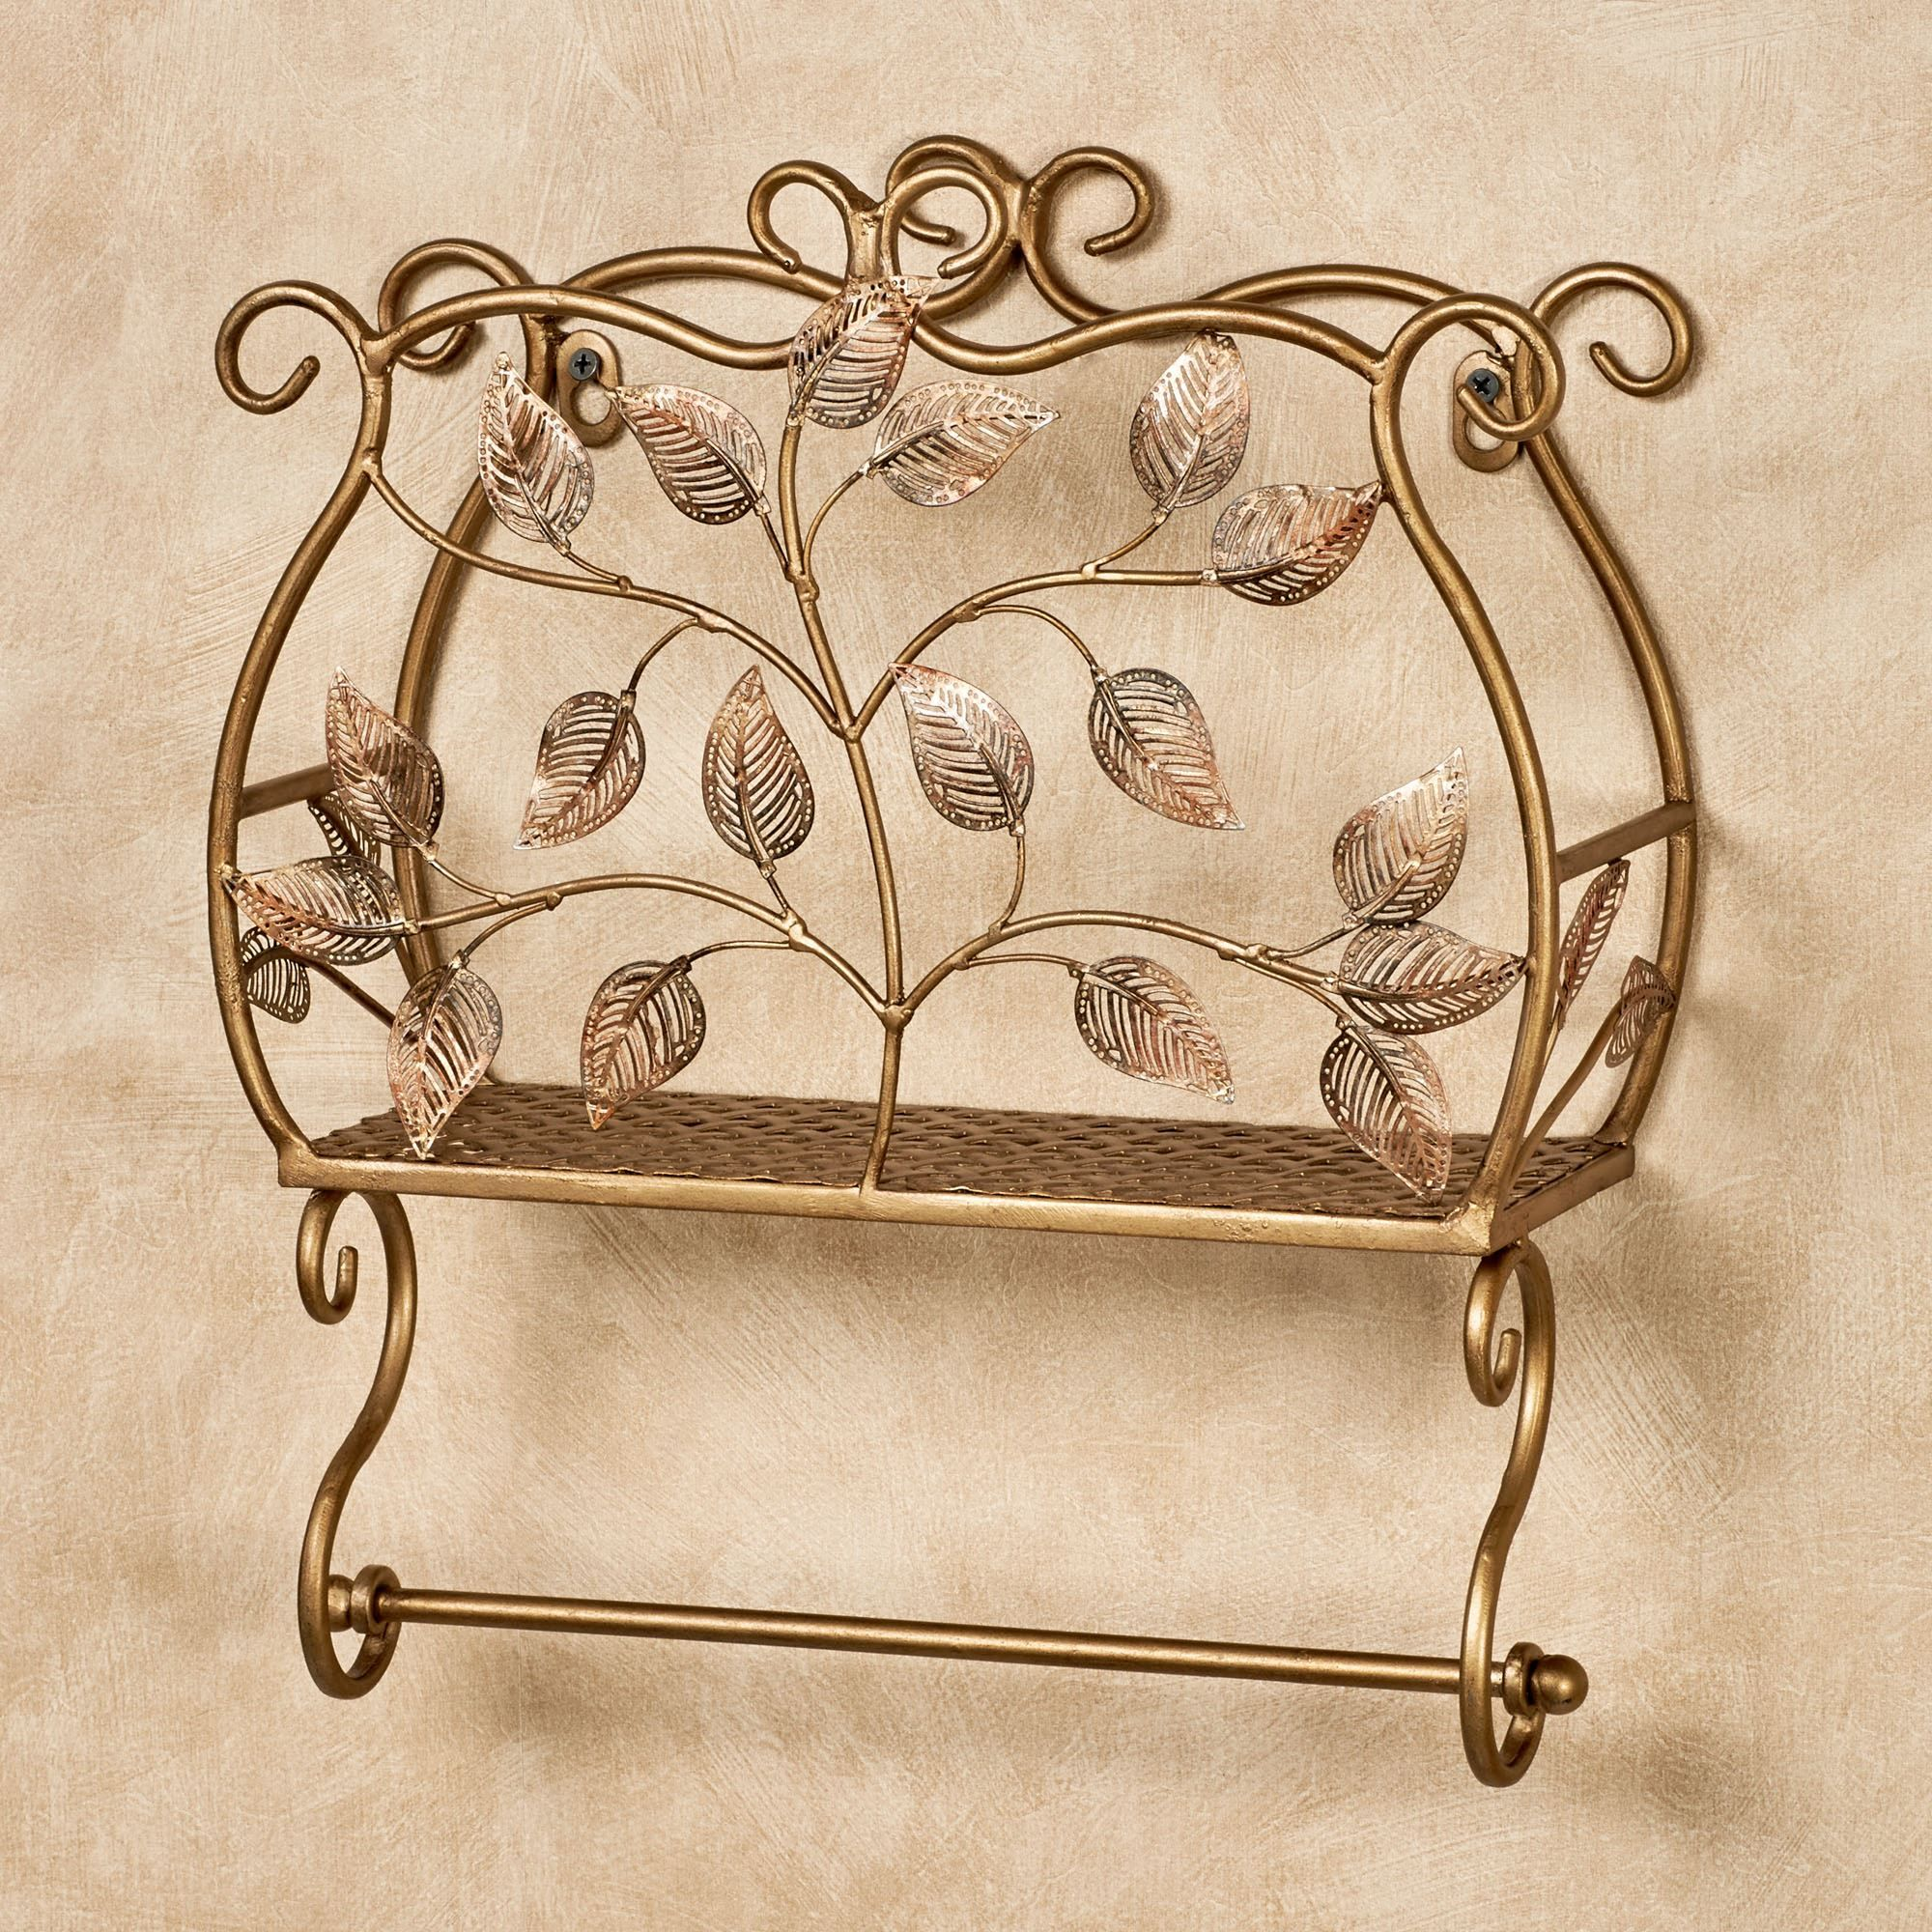 Eden Wall Toilet Paper Holder And Magazine Rack Toilet Paper Holder Garden Wall Decor Wrought Iron Furniture